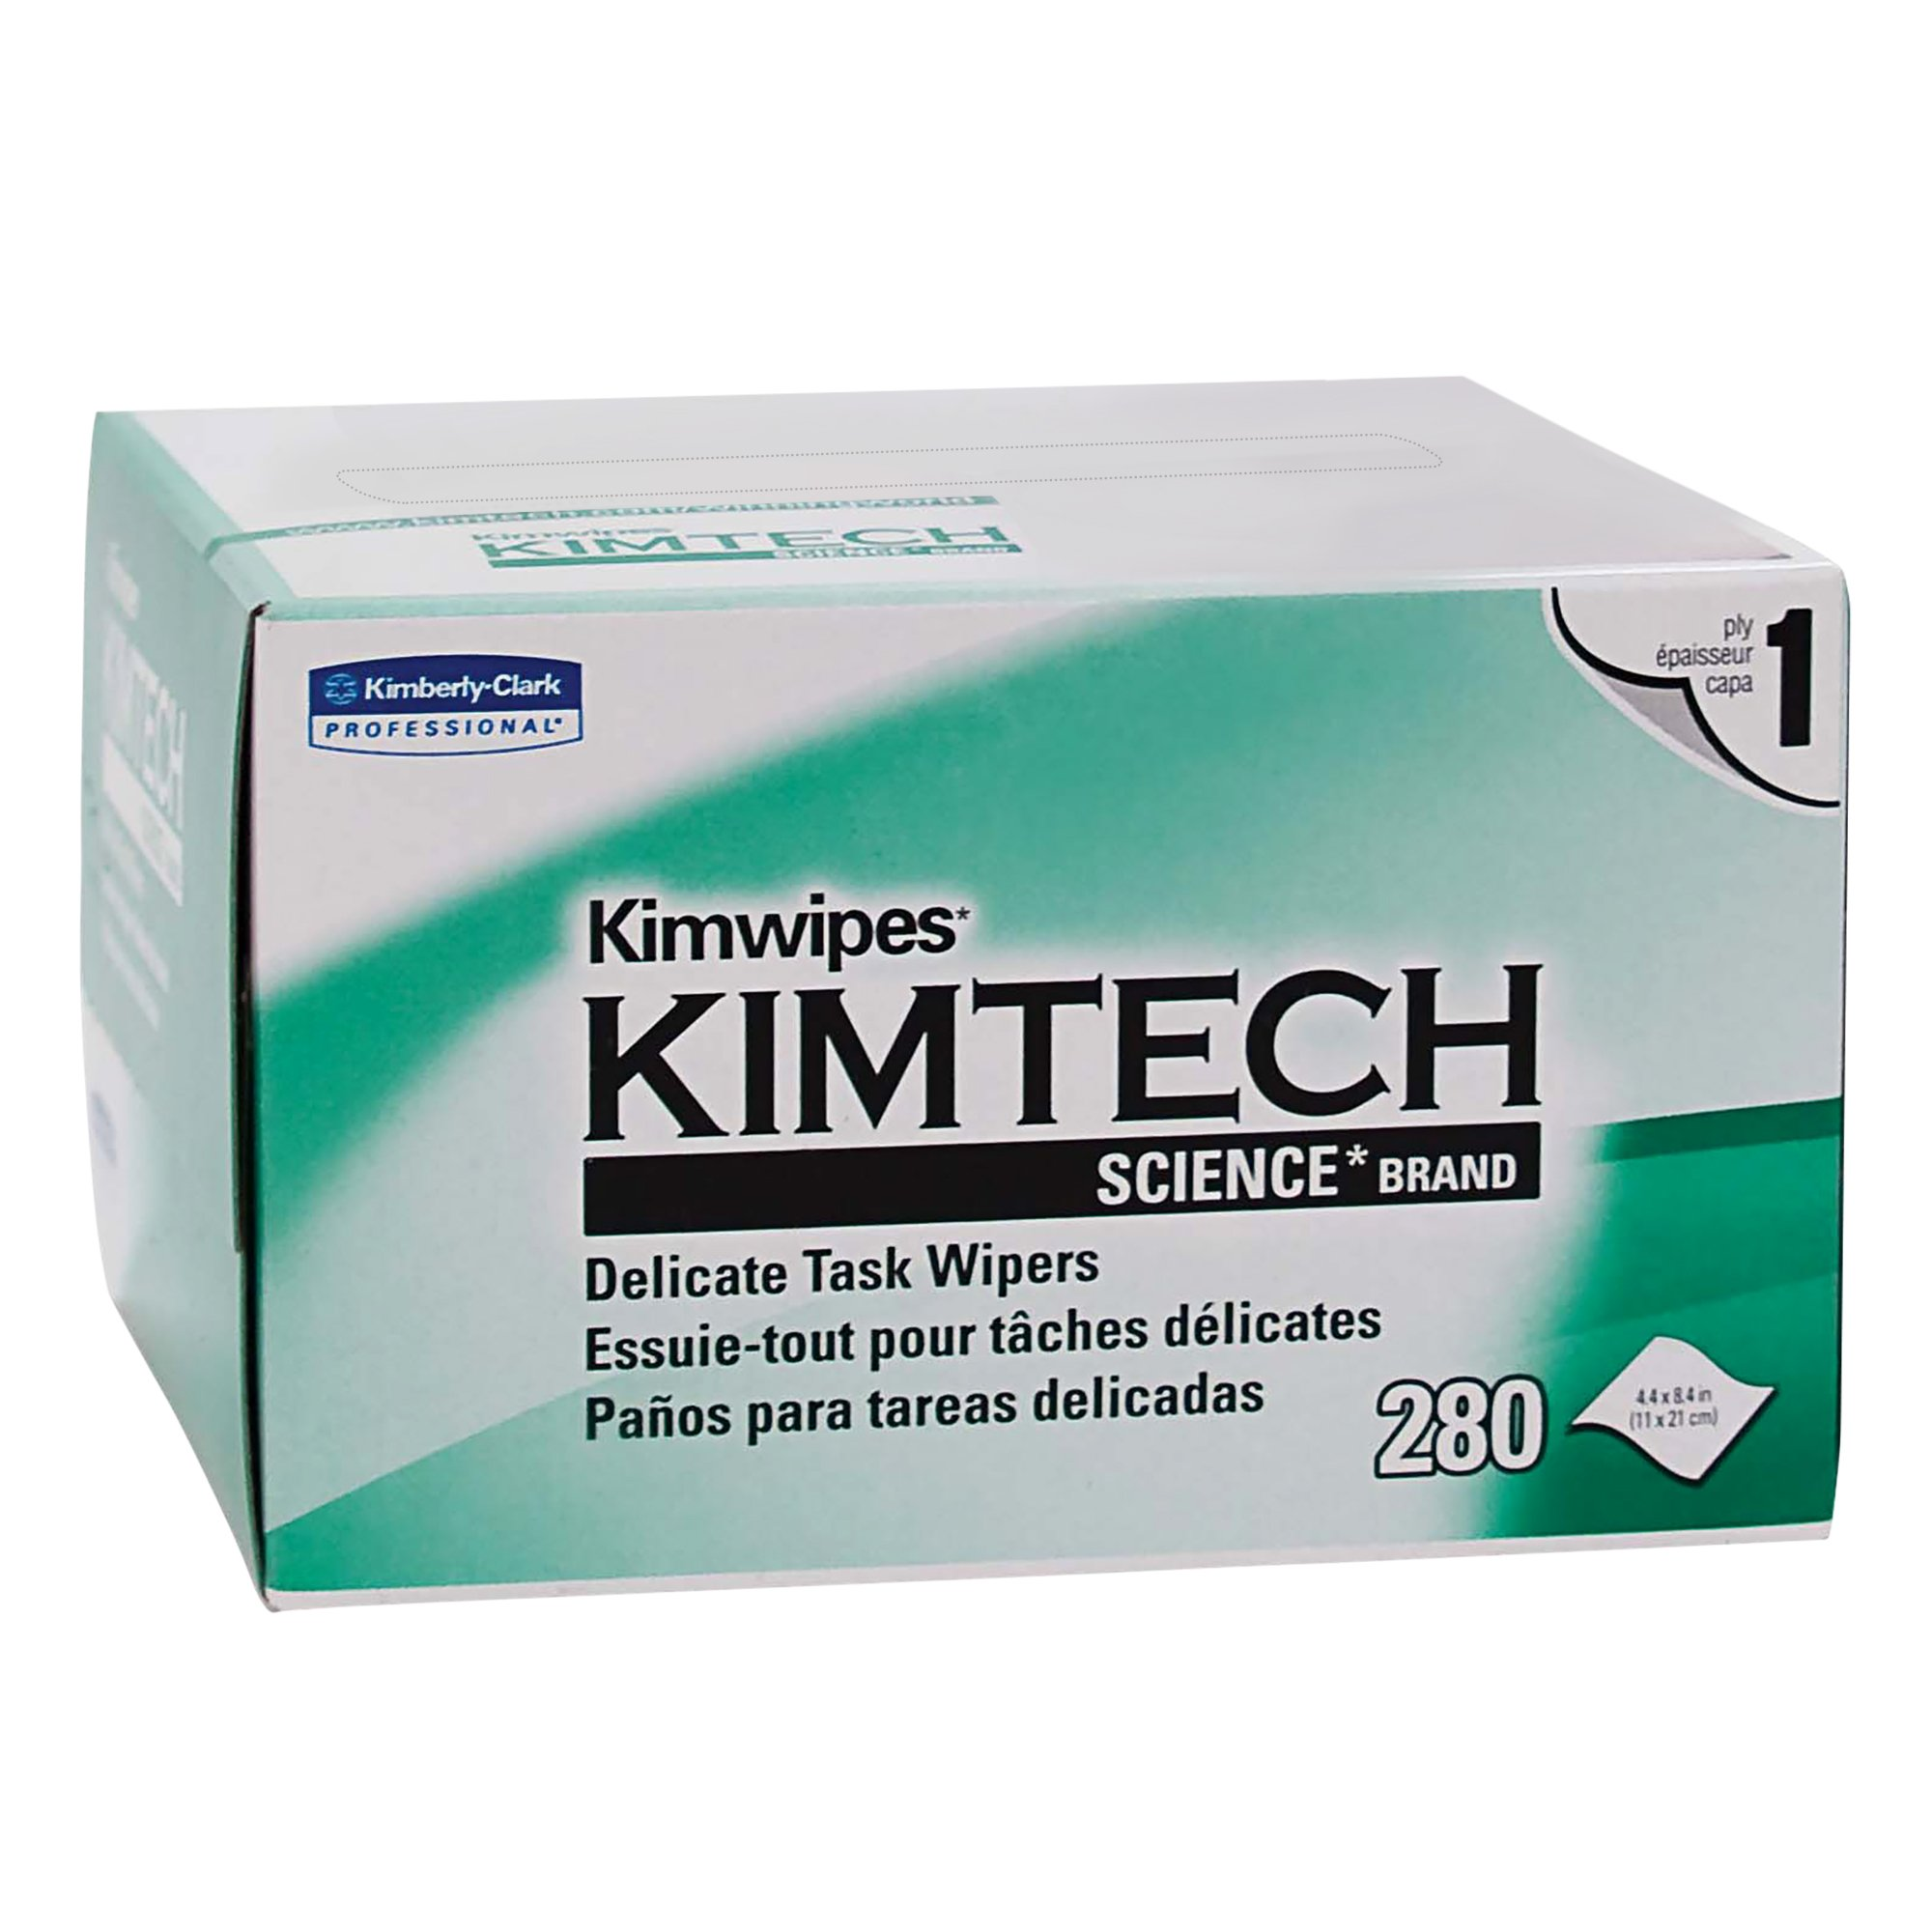 Kimwipes Delicate Task Kimtech Science Wipers (34155), White, 1-PLY, 60 Pop-Up Boxes/Case, 280 Sheets/Box, 16,800 Sheets/Case by Kimberly-Clark Professional